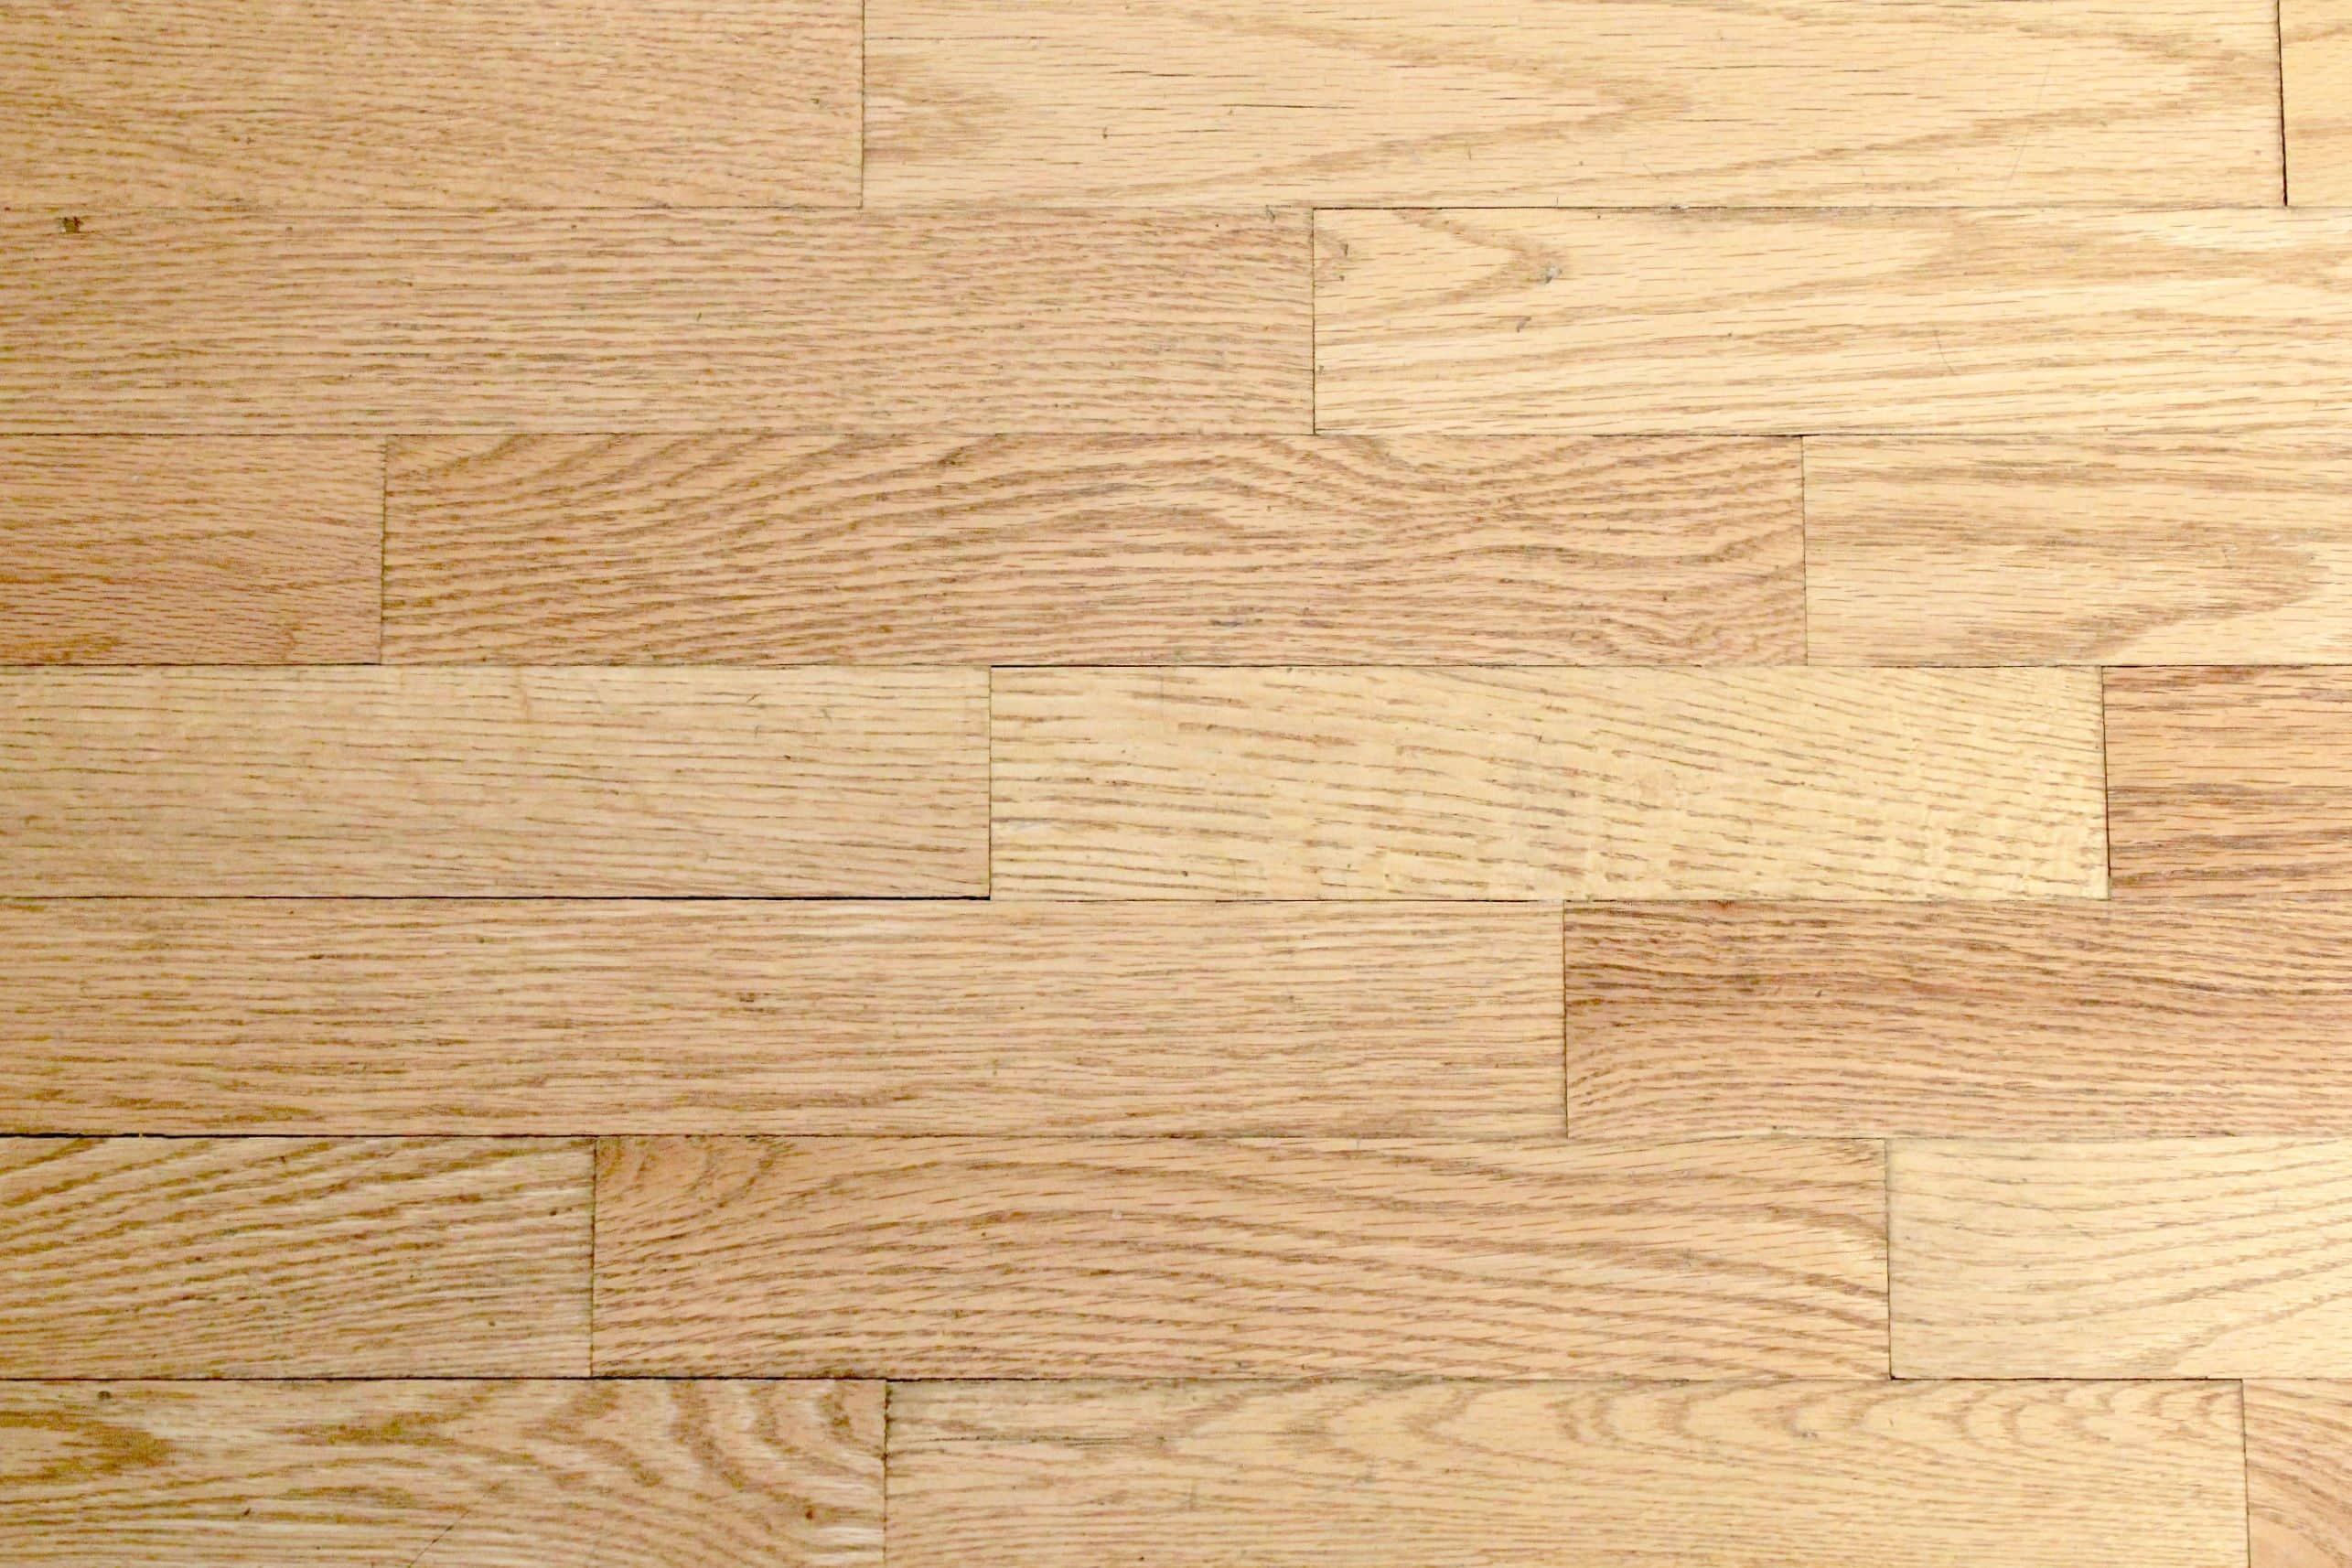 light-wood-texture-floor-tile-lumber-surface-wood-floor-hardwood ...